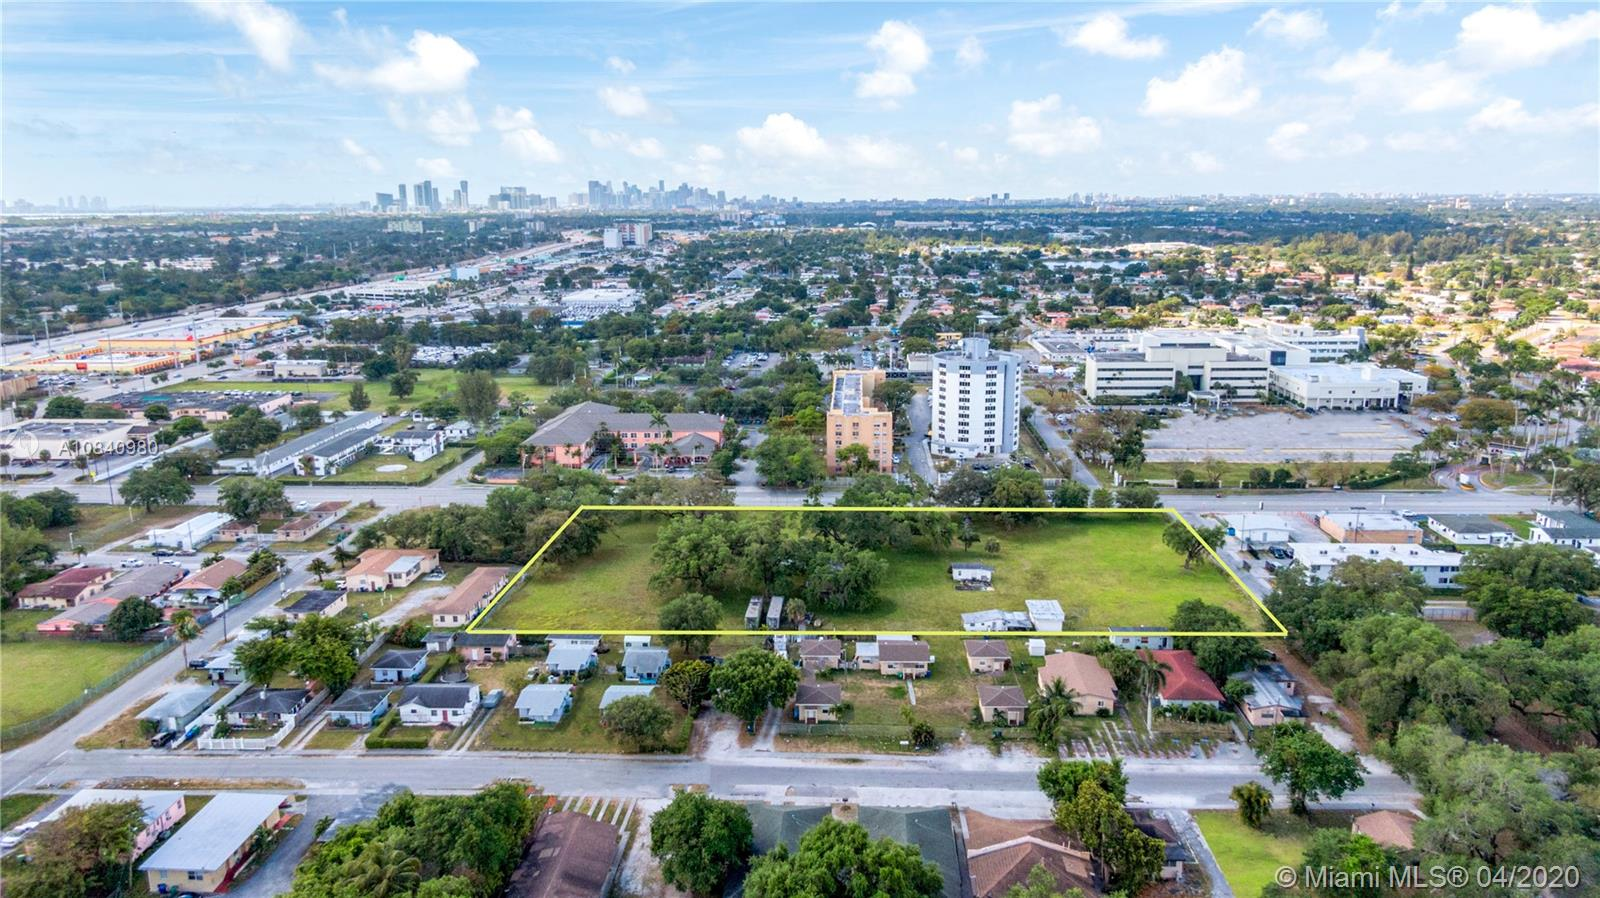 975 NW 95th St Property Photo - Miami, FL real estate listing